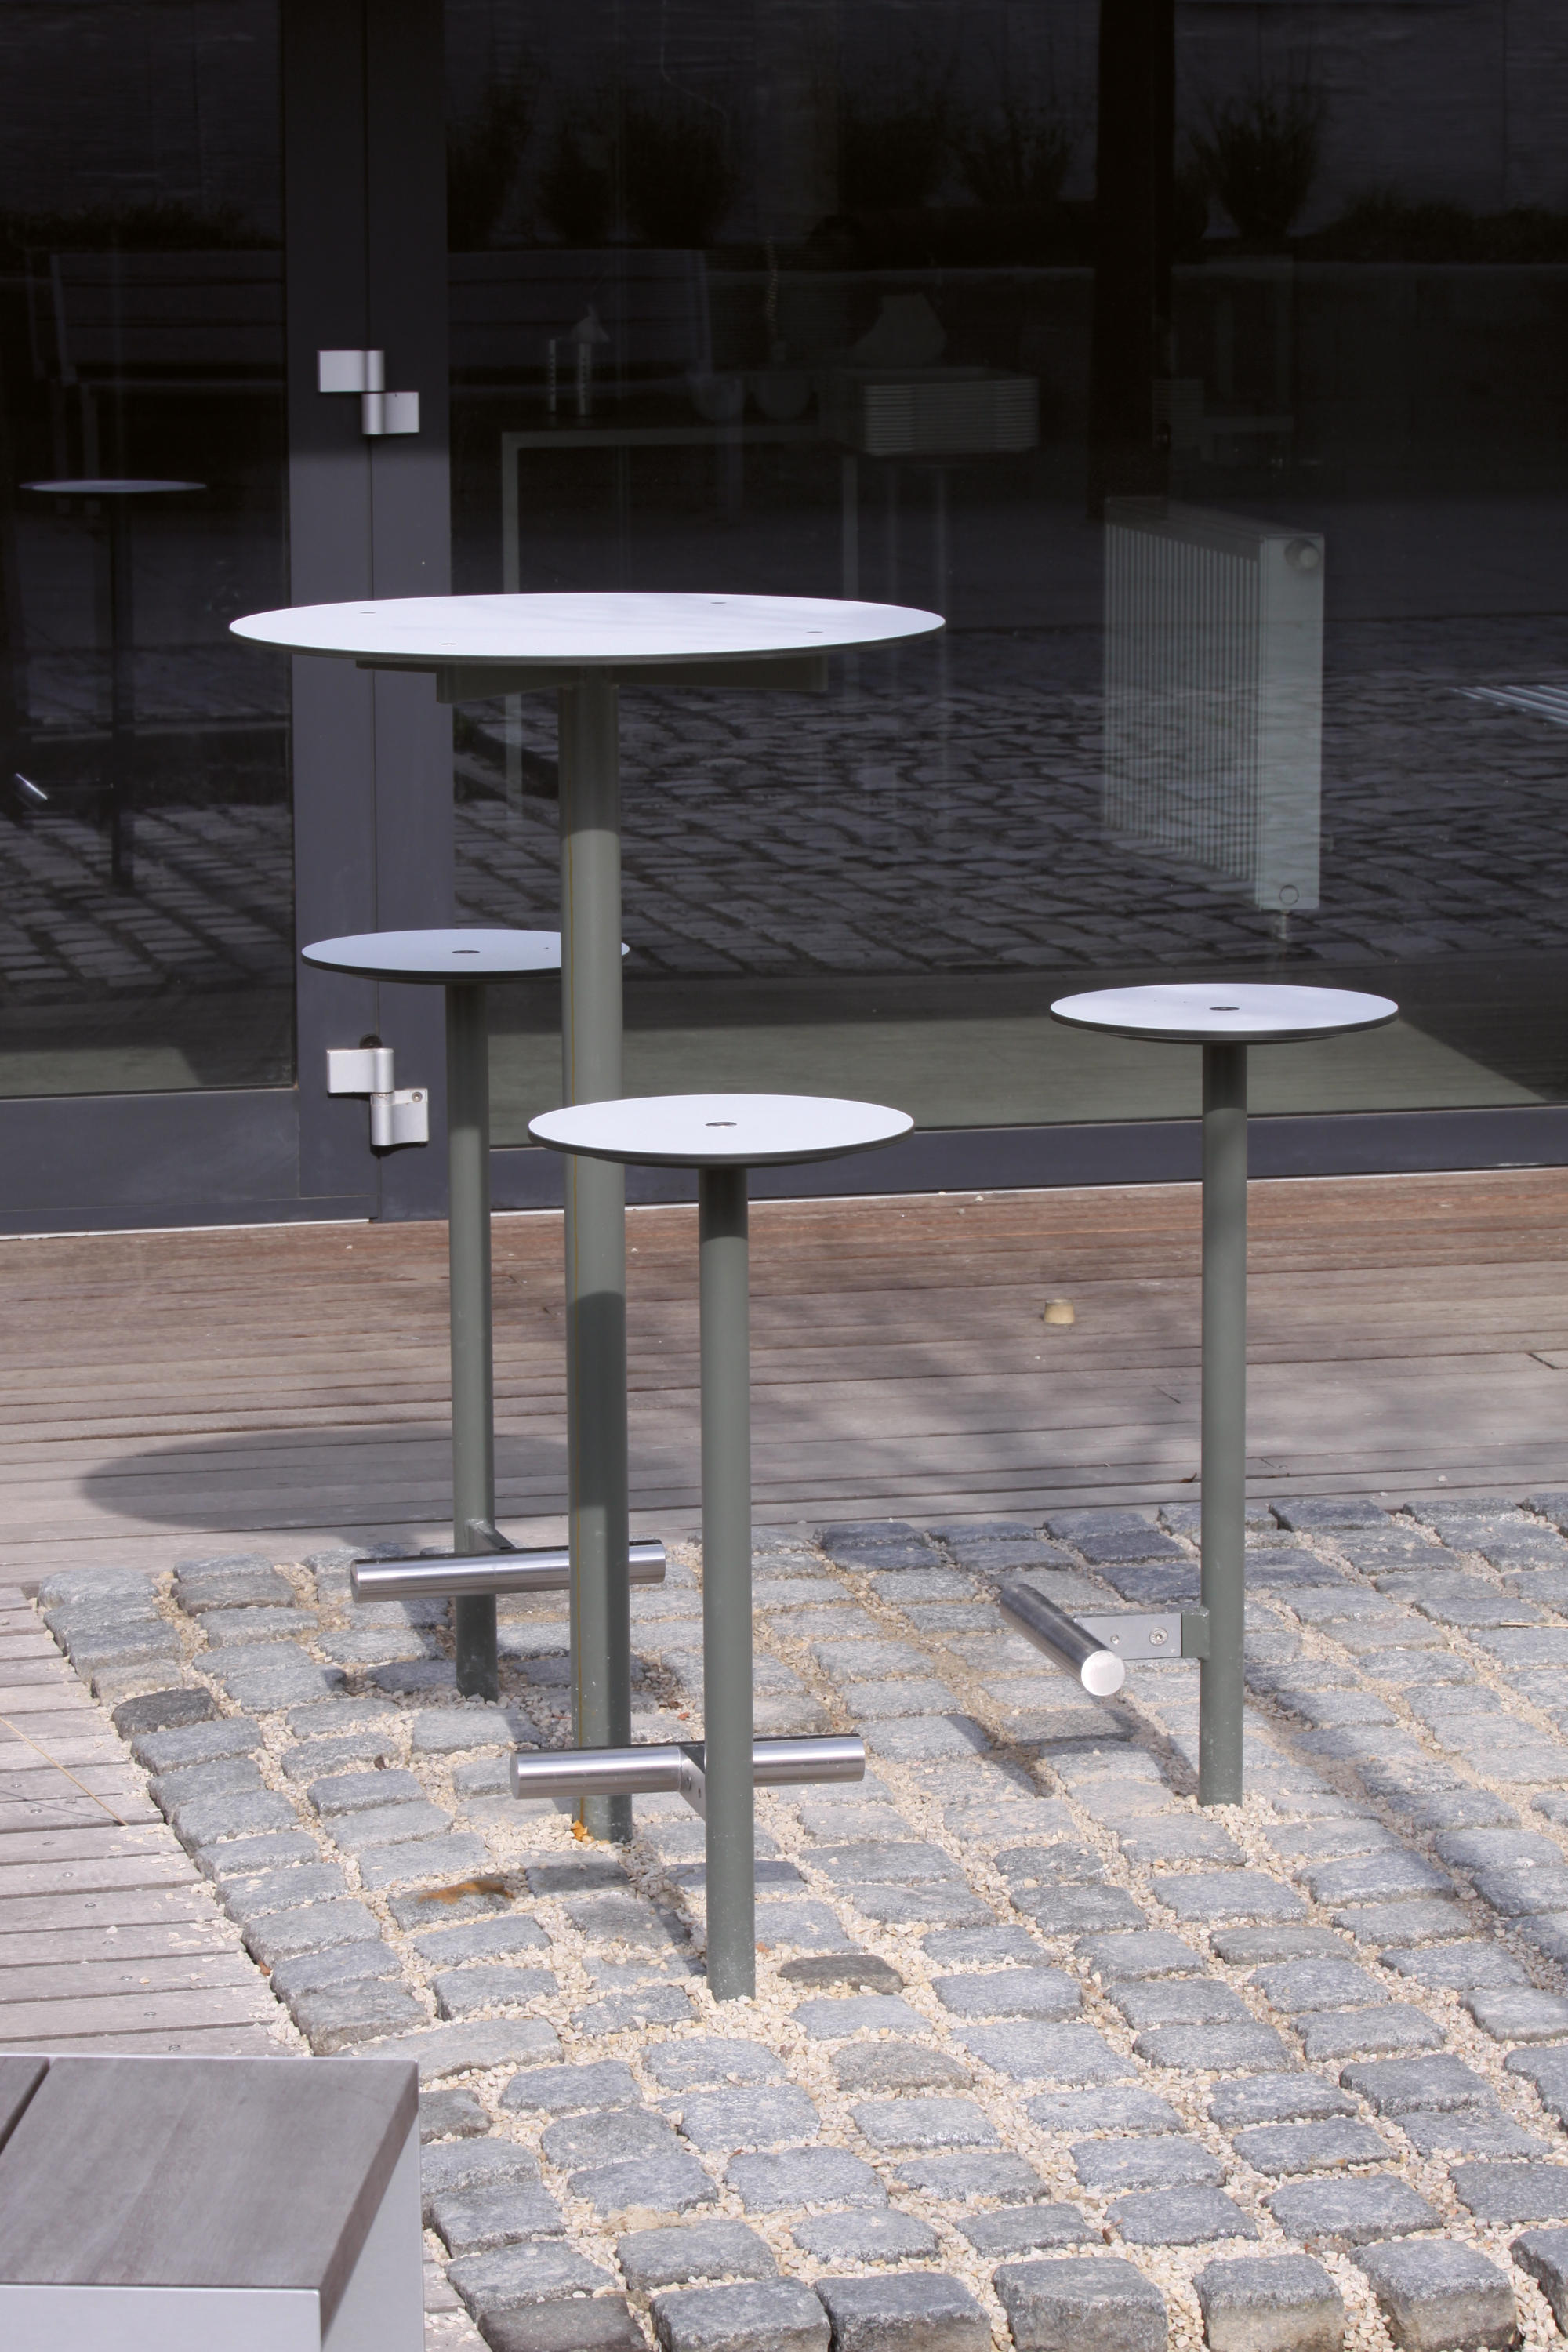 bistrot raised stool exterior stools from mmcit architonic. Black Bedroom Furniture Sets. Home Design Ideas